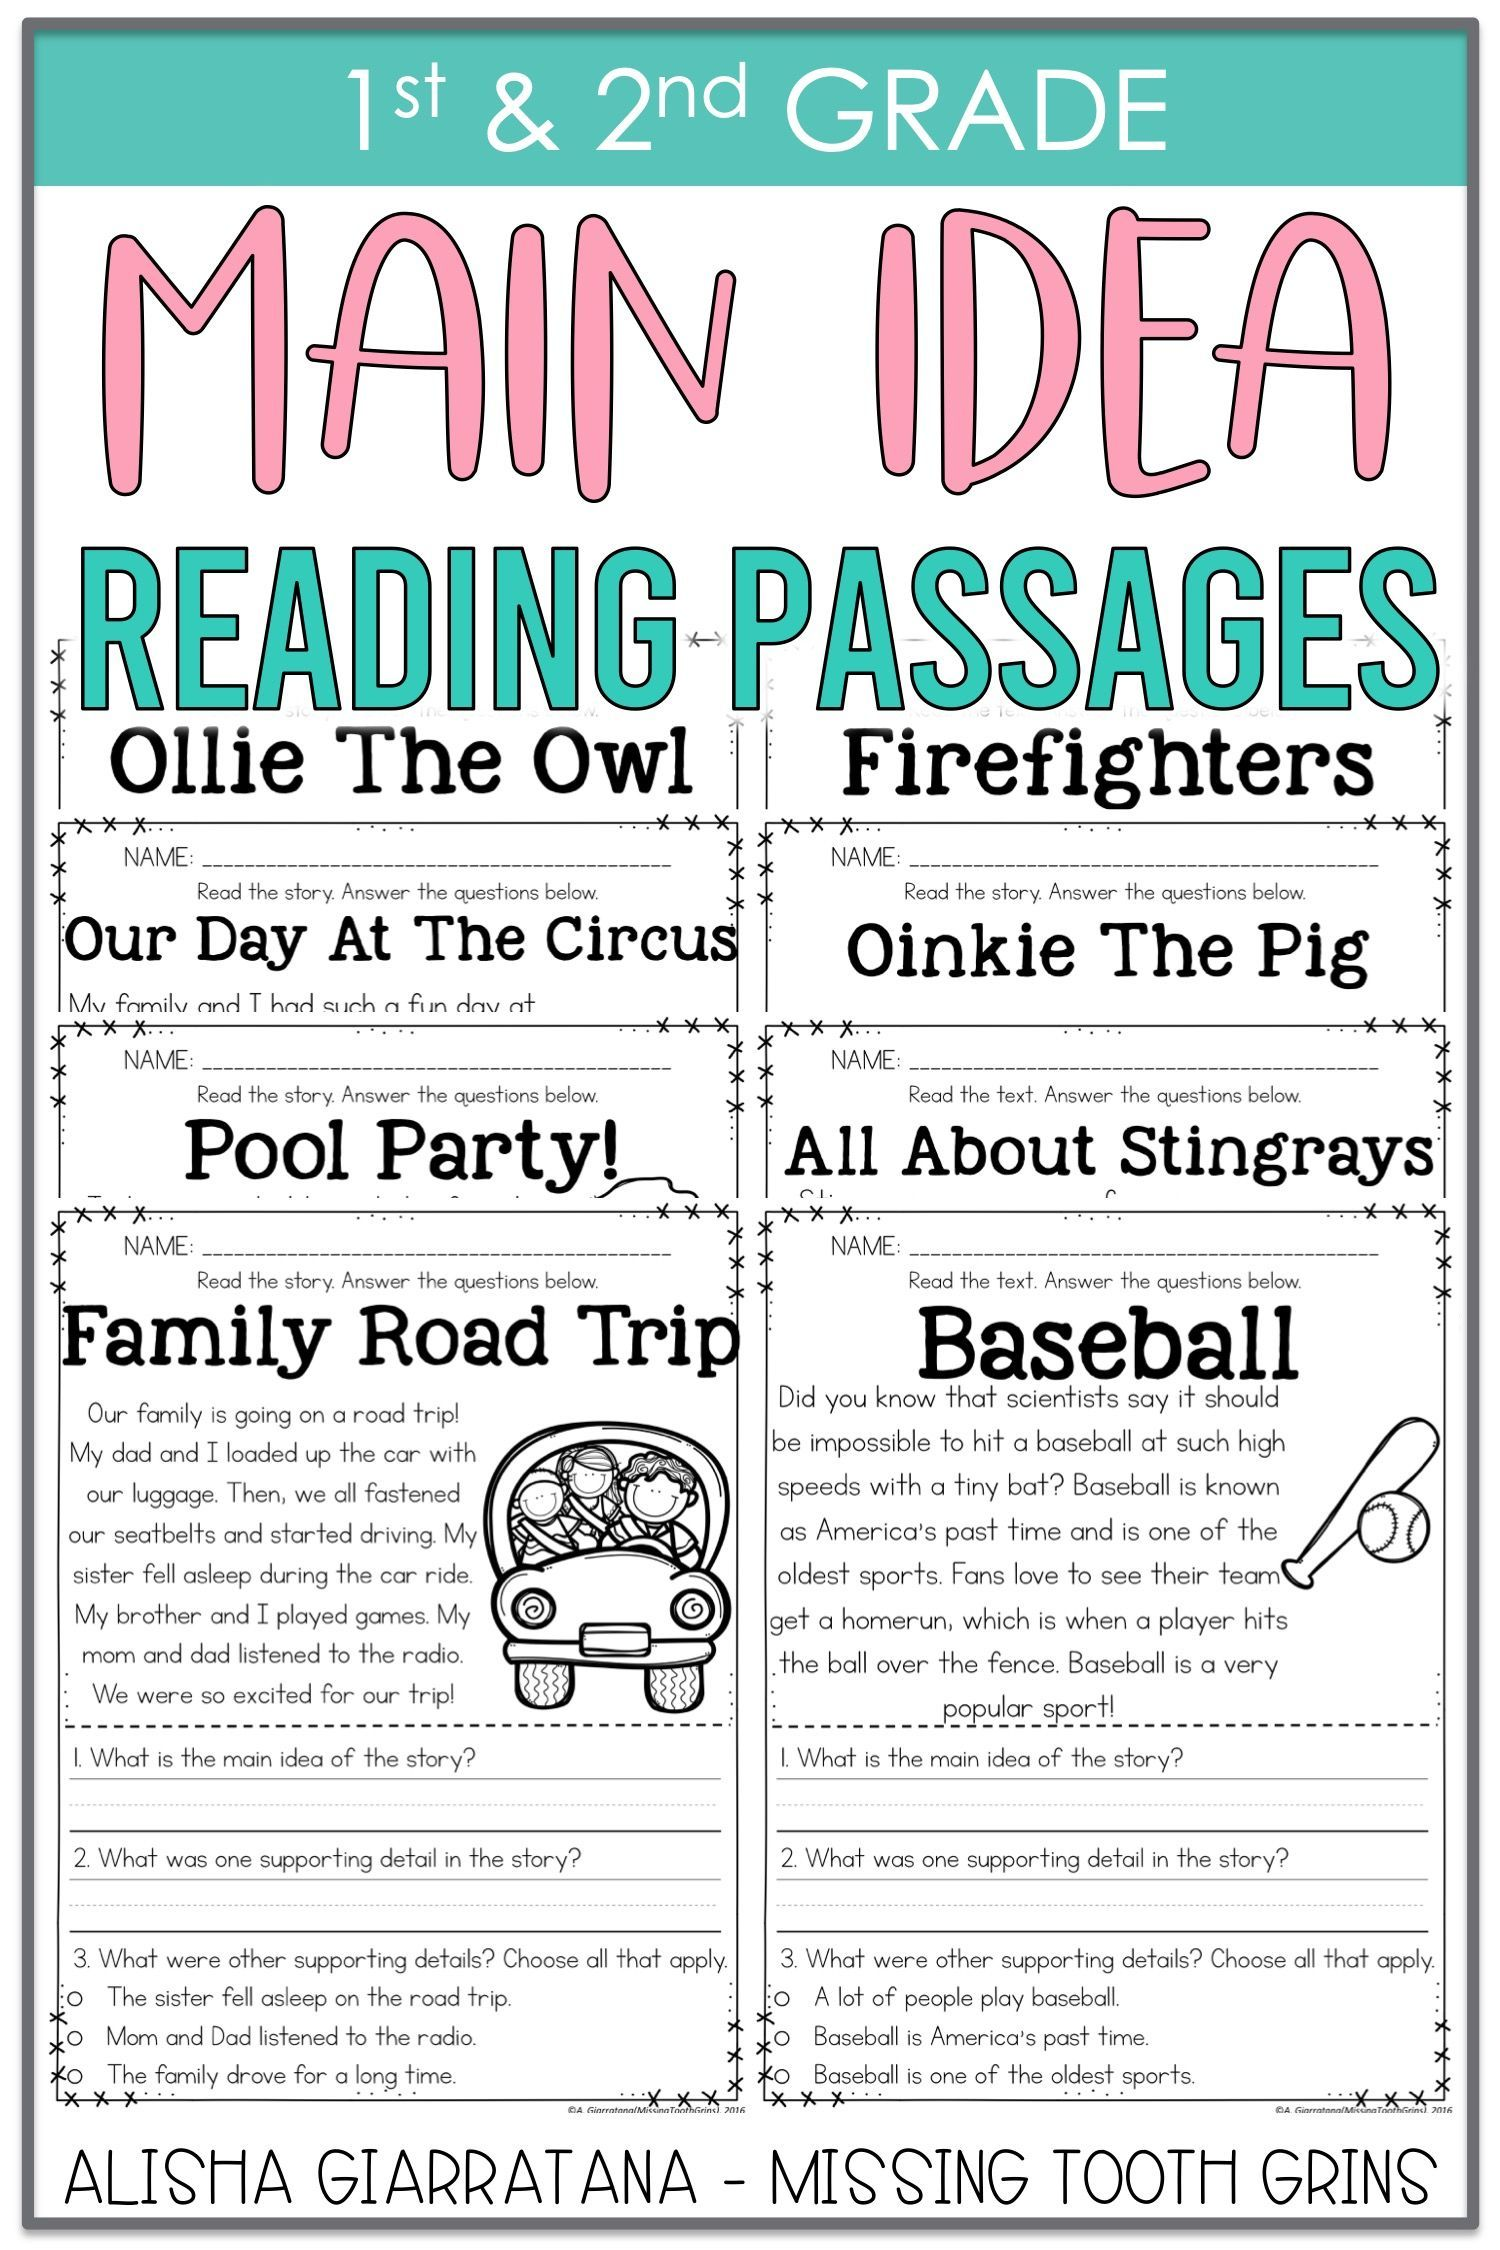 Main Idea Passages In 2020 Guided Reading Resources Main Idea Reading Passages First grade reading passage main idea